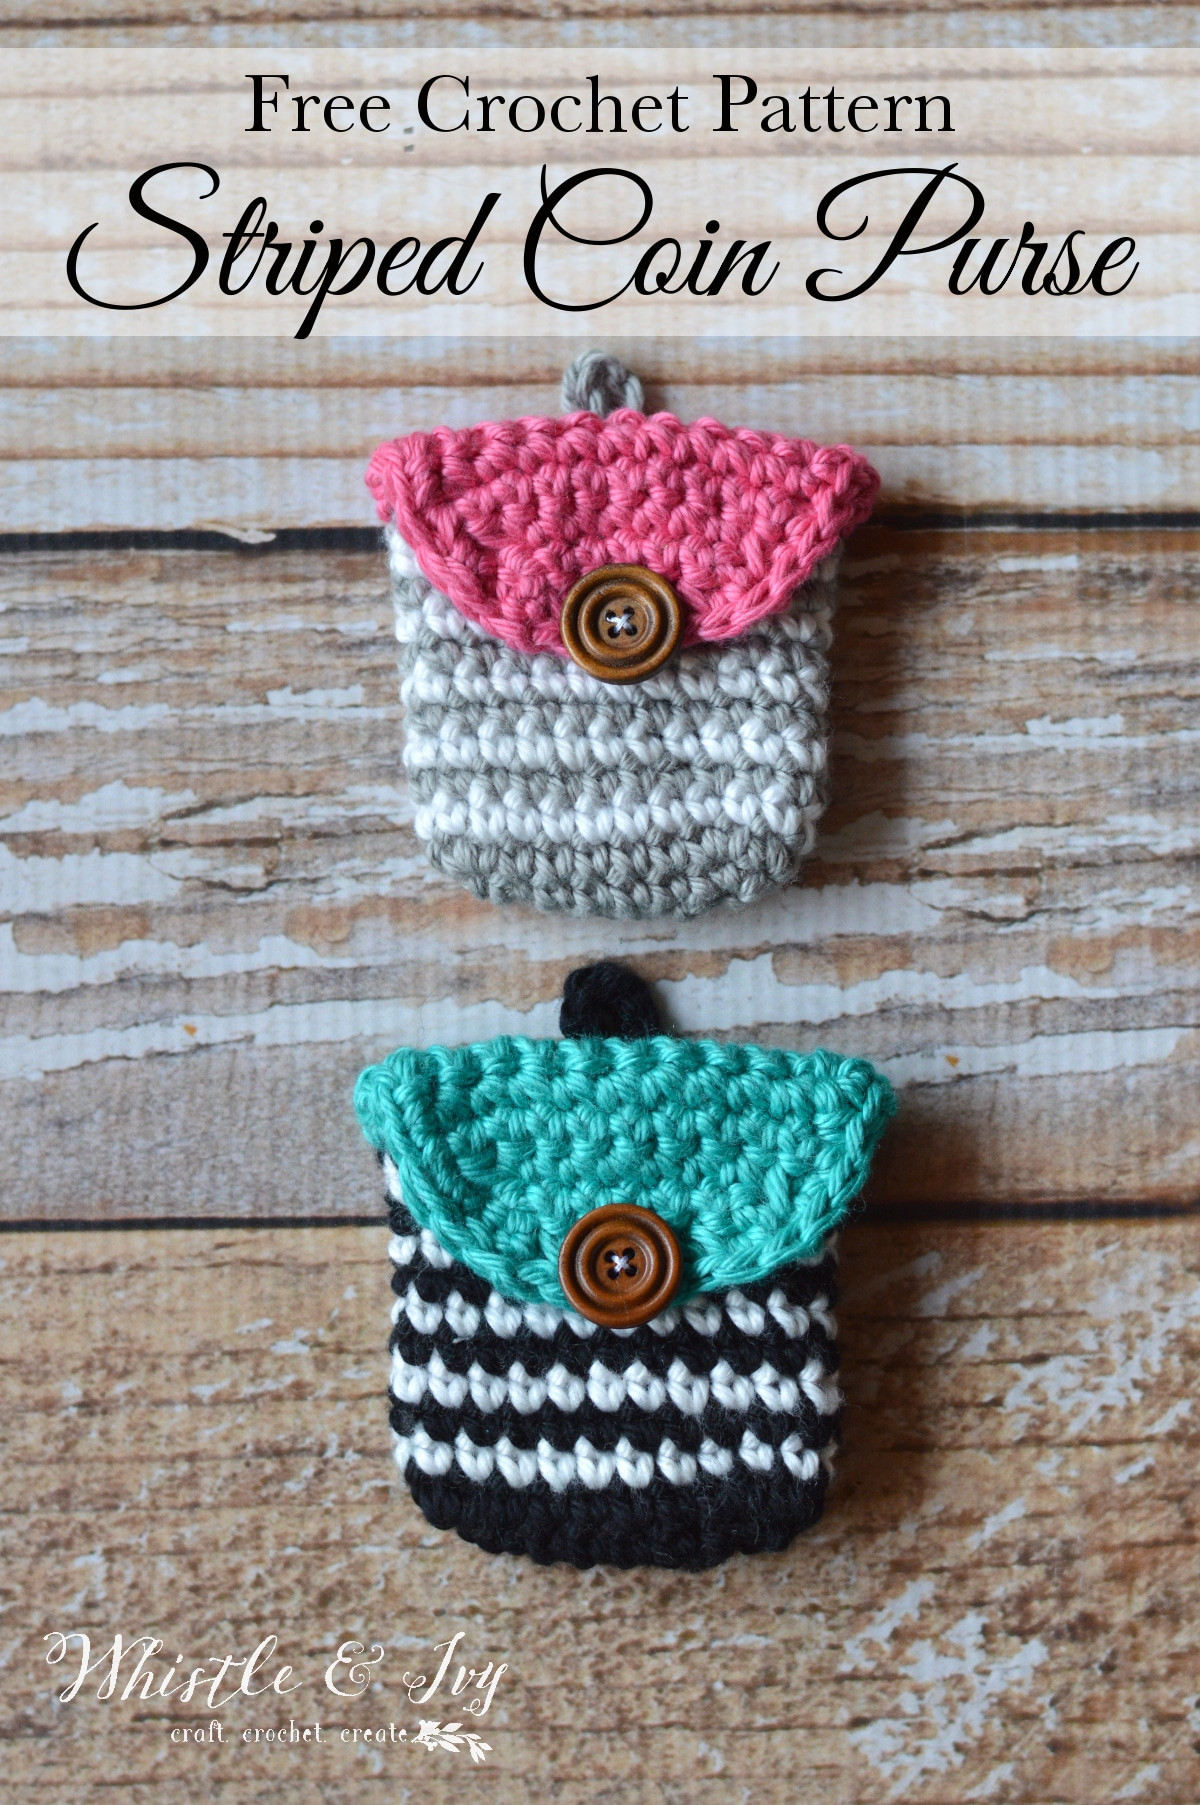 Crochet Purses Beautiful Crochet Striped Coin Purse Whistle and Ivy Of Luxury 41 Pictures Crochet Purses